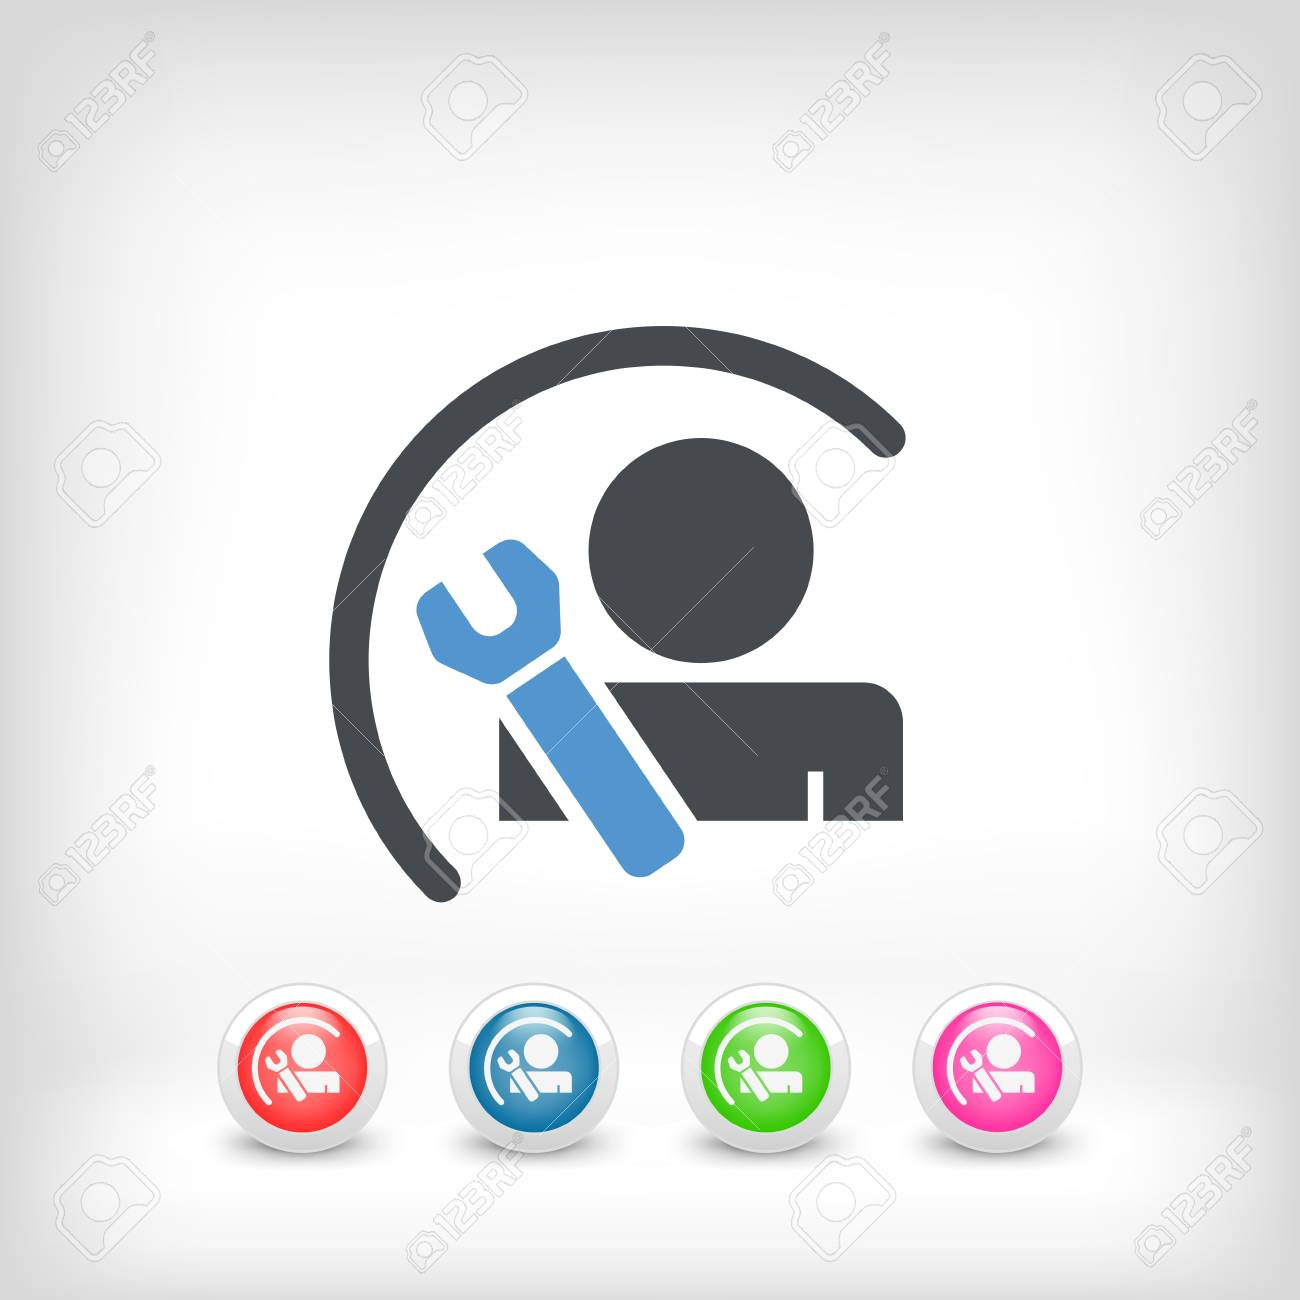 Worker concept symbol icon Stock Vector - 19875635